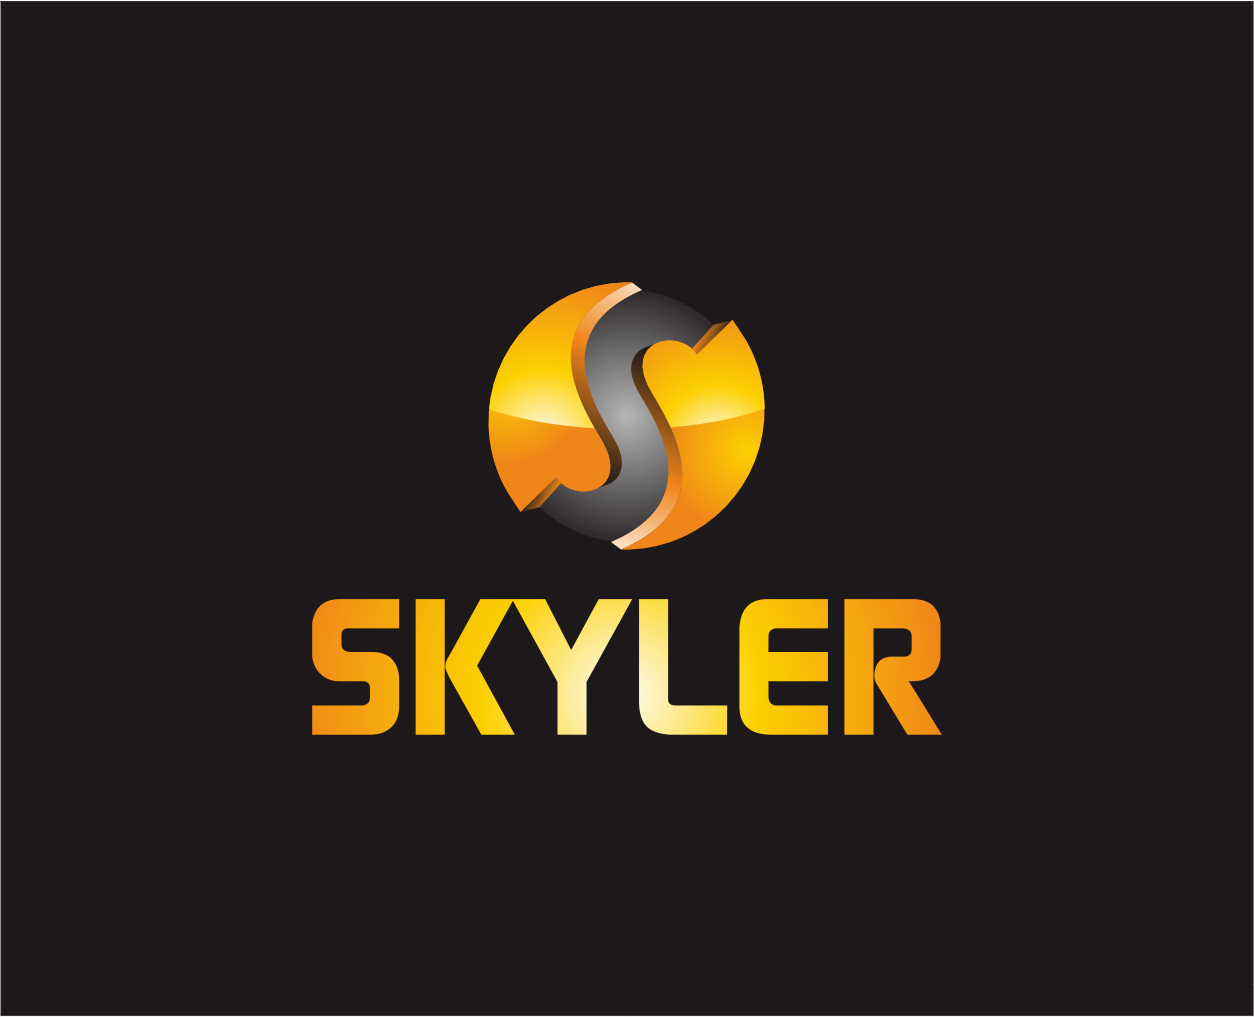 Logo Design by Armada Jamaluddin - Entry No. 161 in the Logo Design Contest Artistic Logo Design for Skyler.Asia.